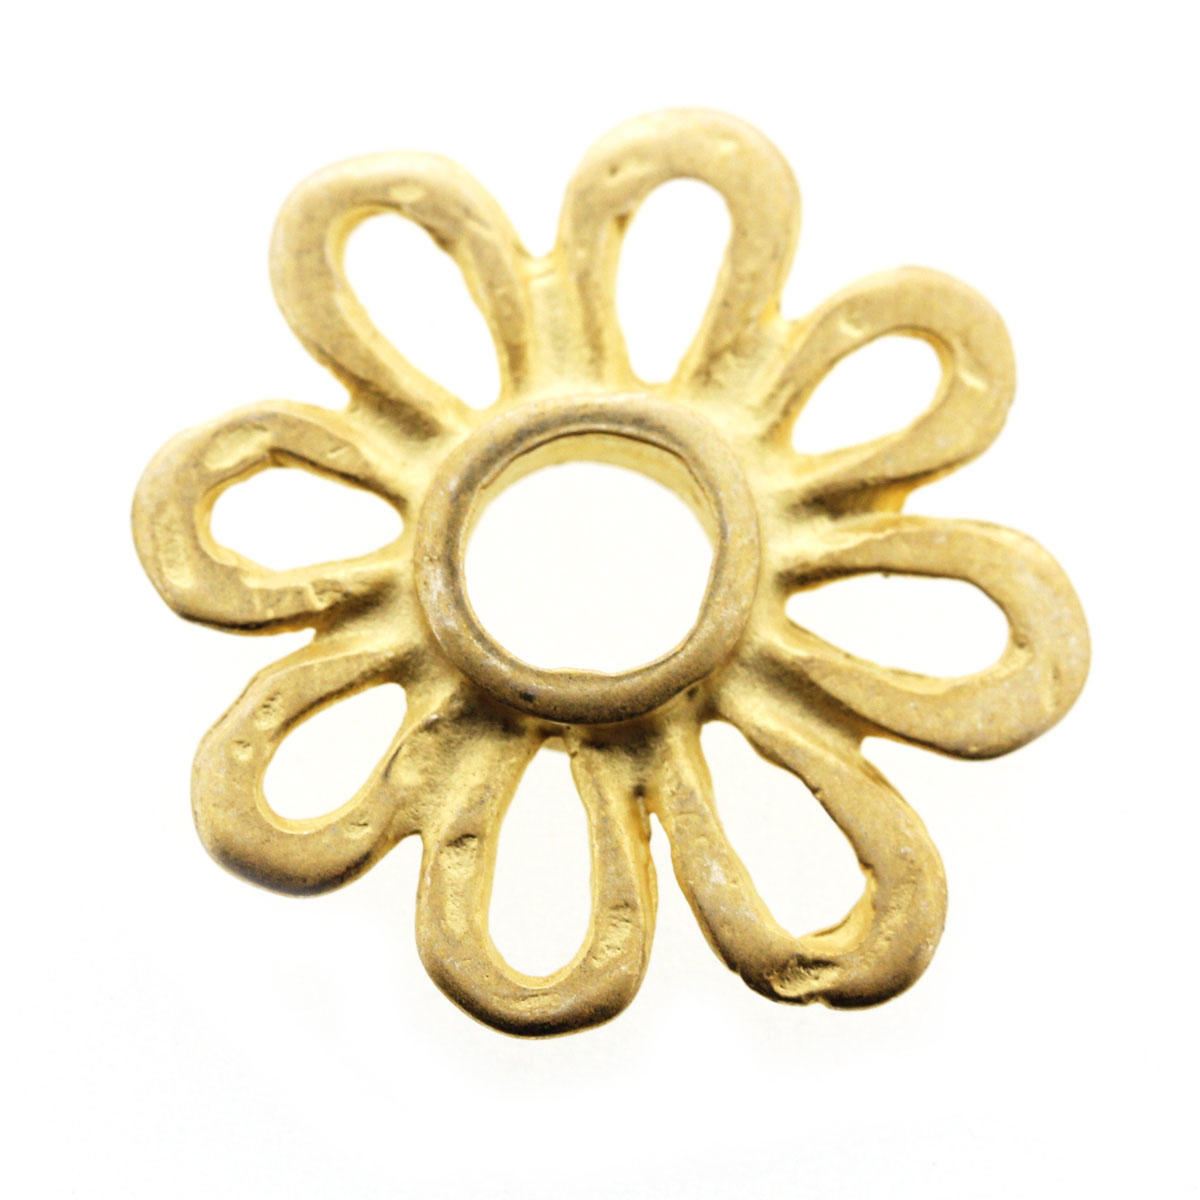 Gold Margarita Daisy Connector Bead